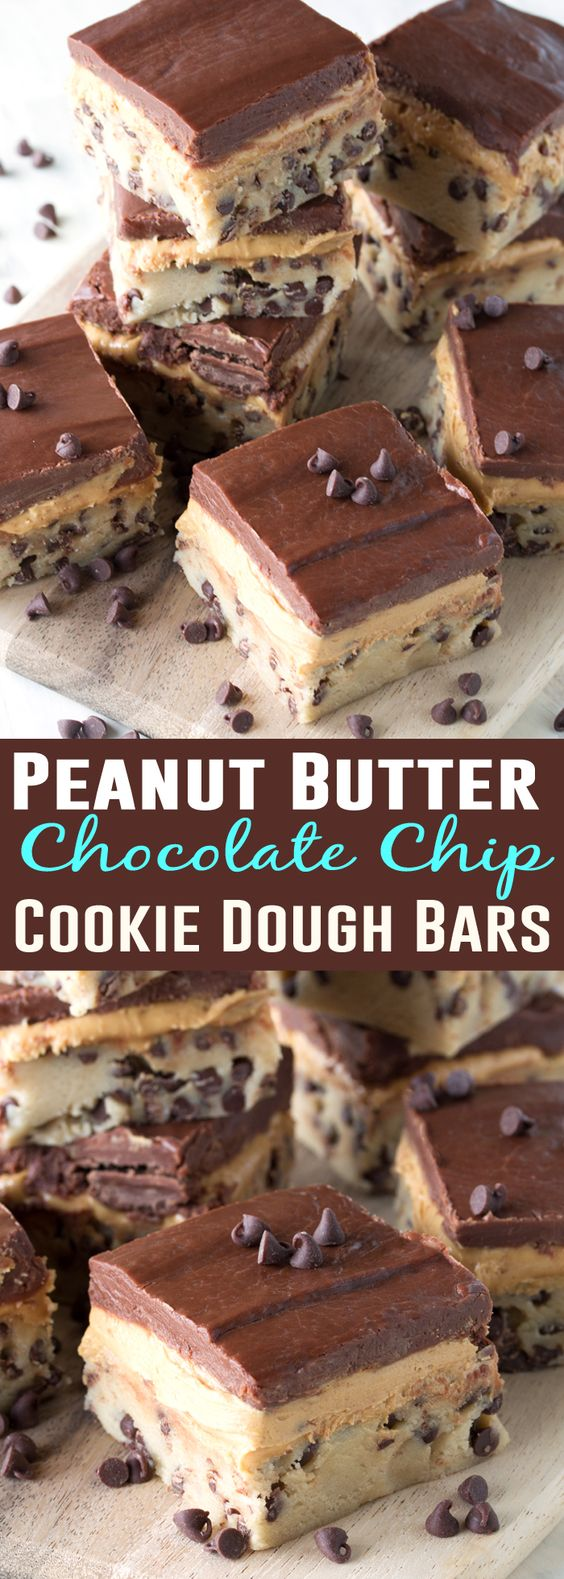 Chocolate chip cookie dough, peanut butter cup filling, and a chocolate ganache create three layers of no bake goodness. No Bake Peanut Butter Chocolate Chip Cookie Dough Bars are simply irresistible!: